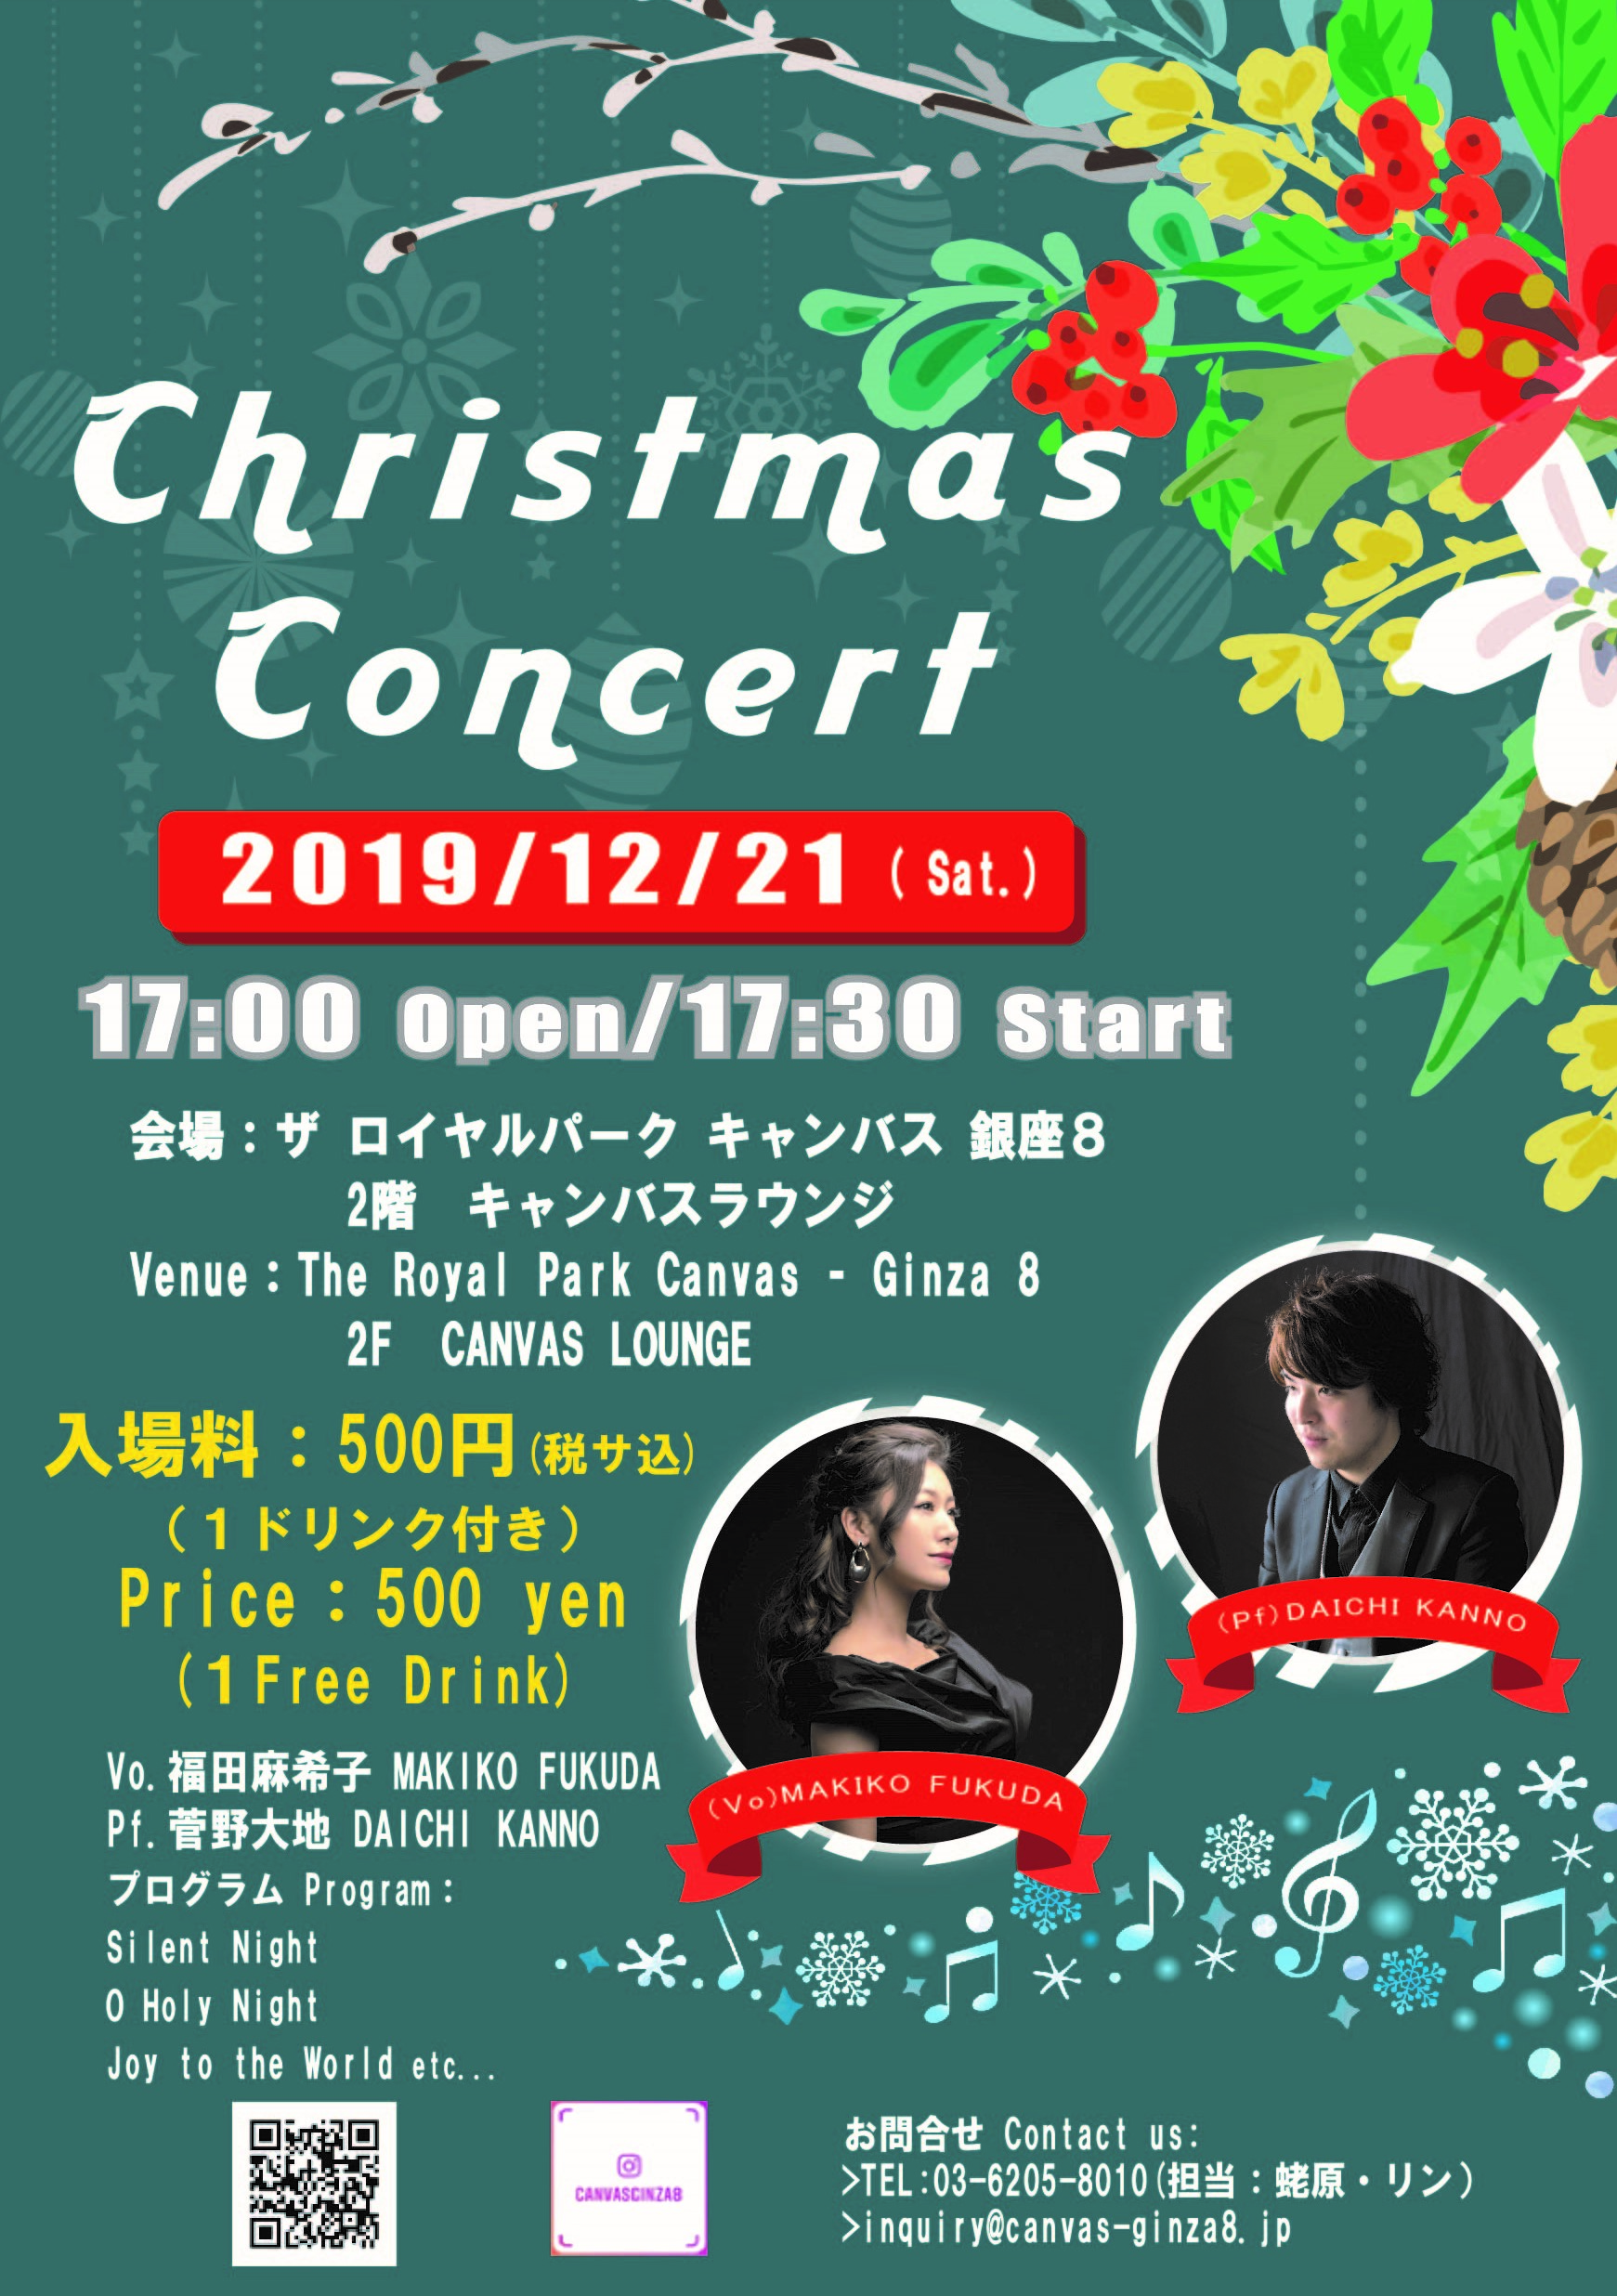 21st December (Sat.) 17:30~ 「 Christmas Concert 」at The Royal Park Canvas – Ginza 8